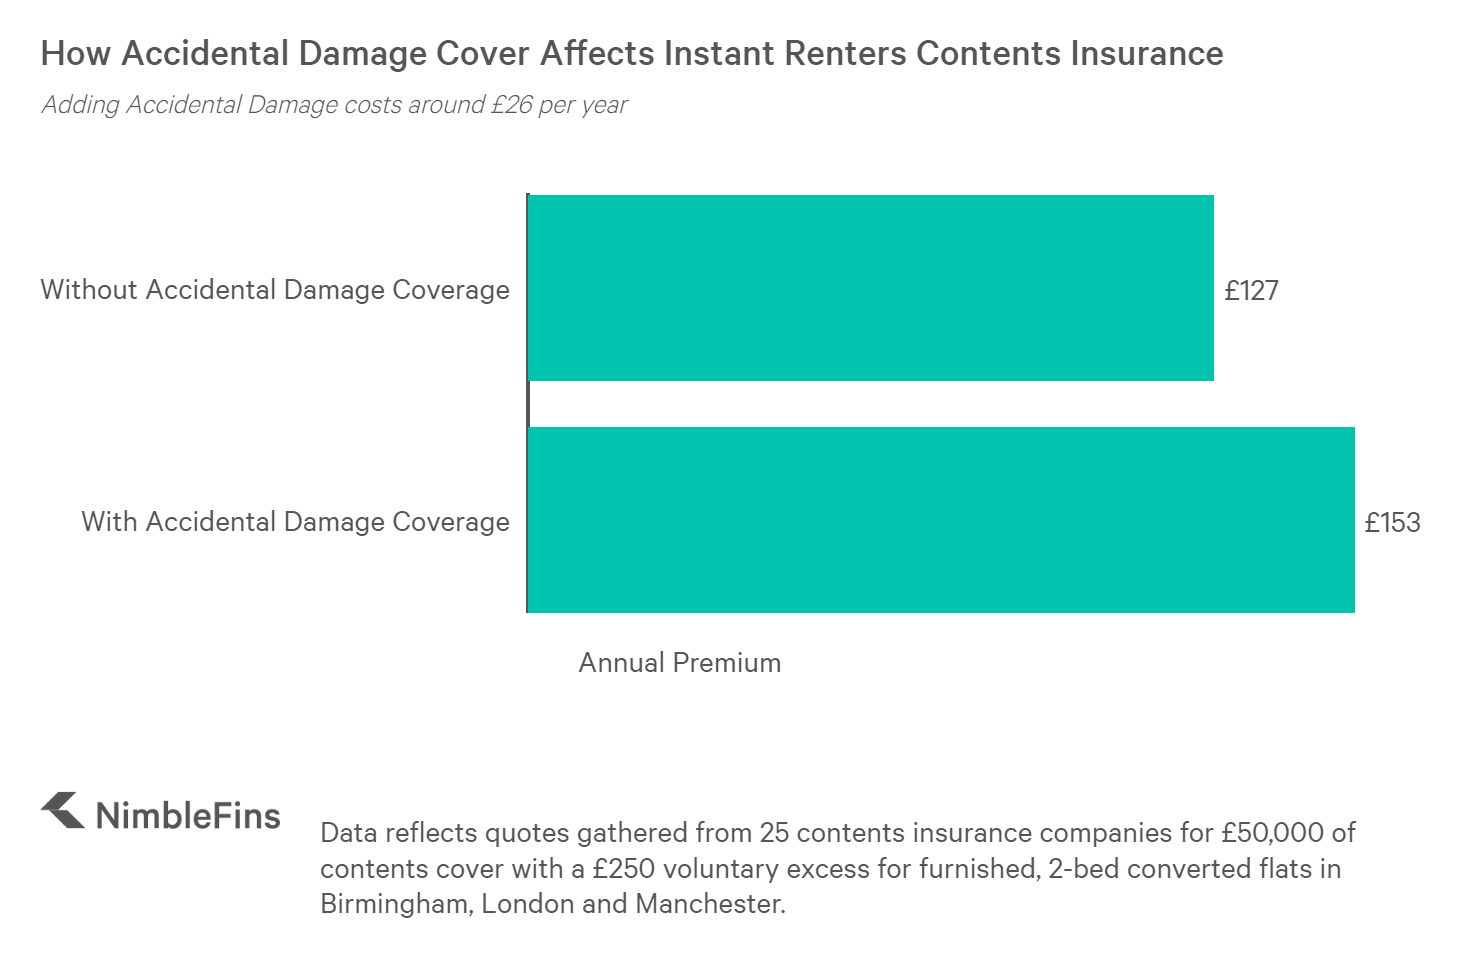 chart showing cost of instant renters insurance with/without accidental damage cover